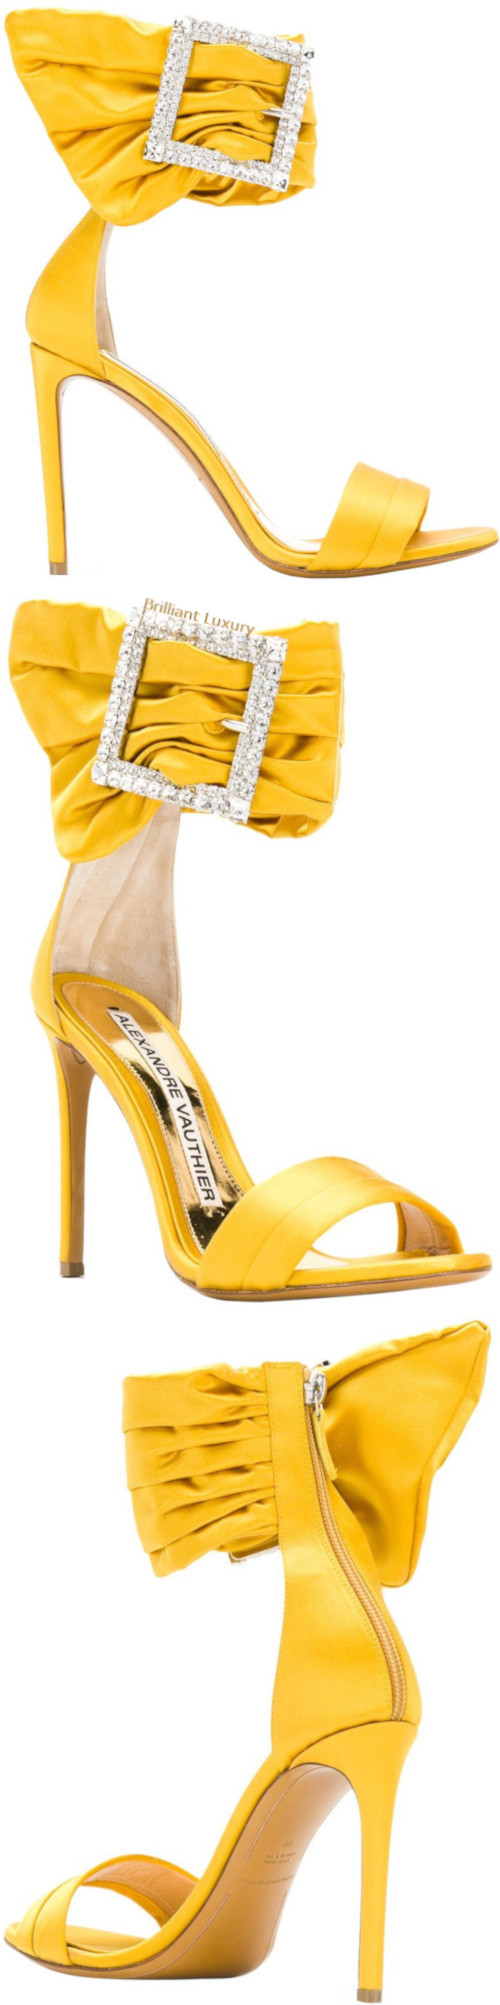 Alexandre Vauthier Yasmin buckled sandals in yellow